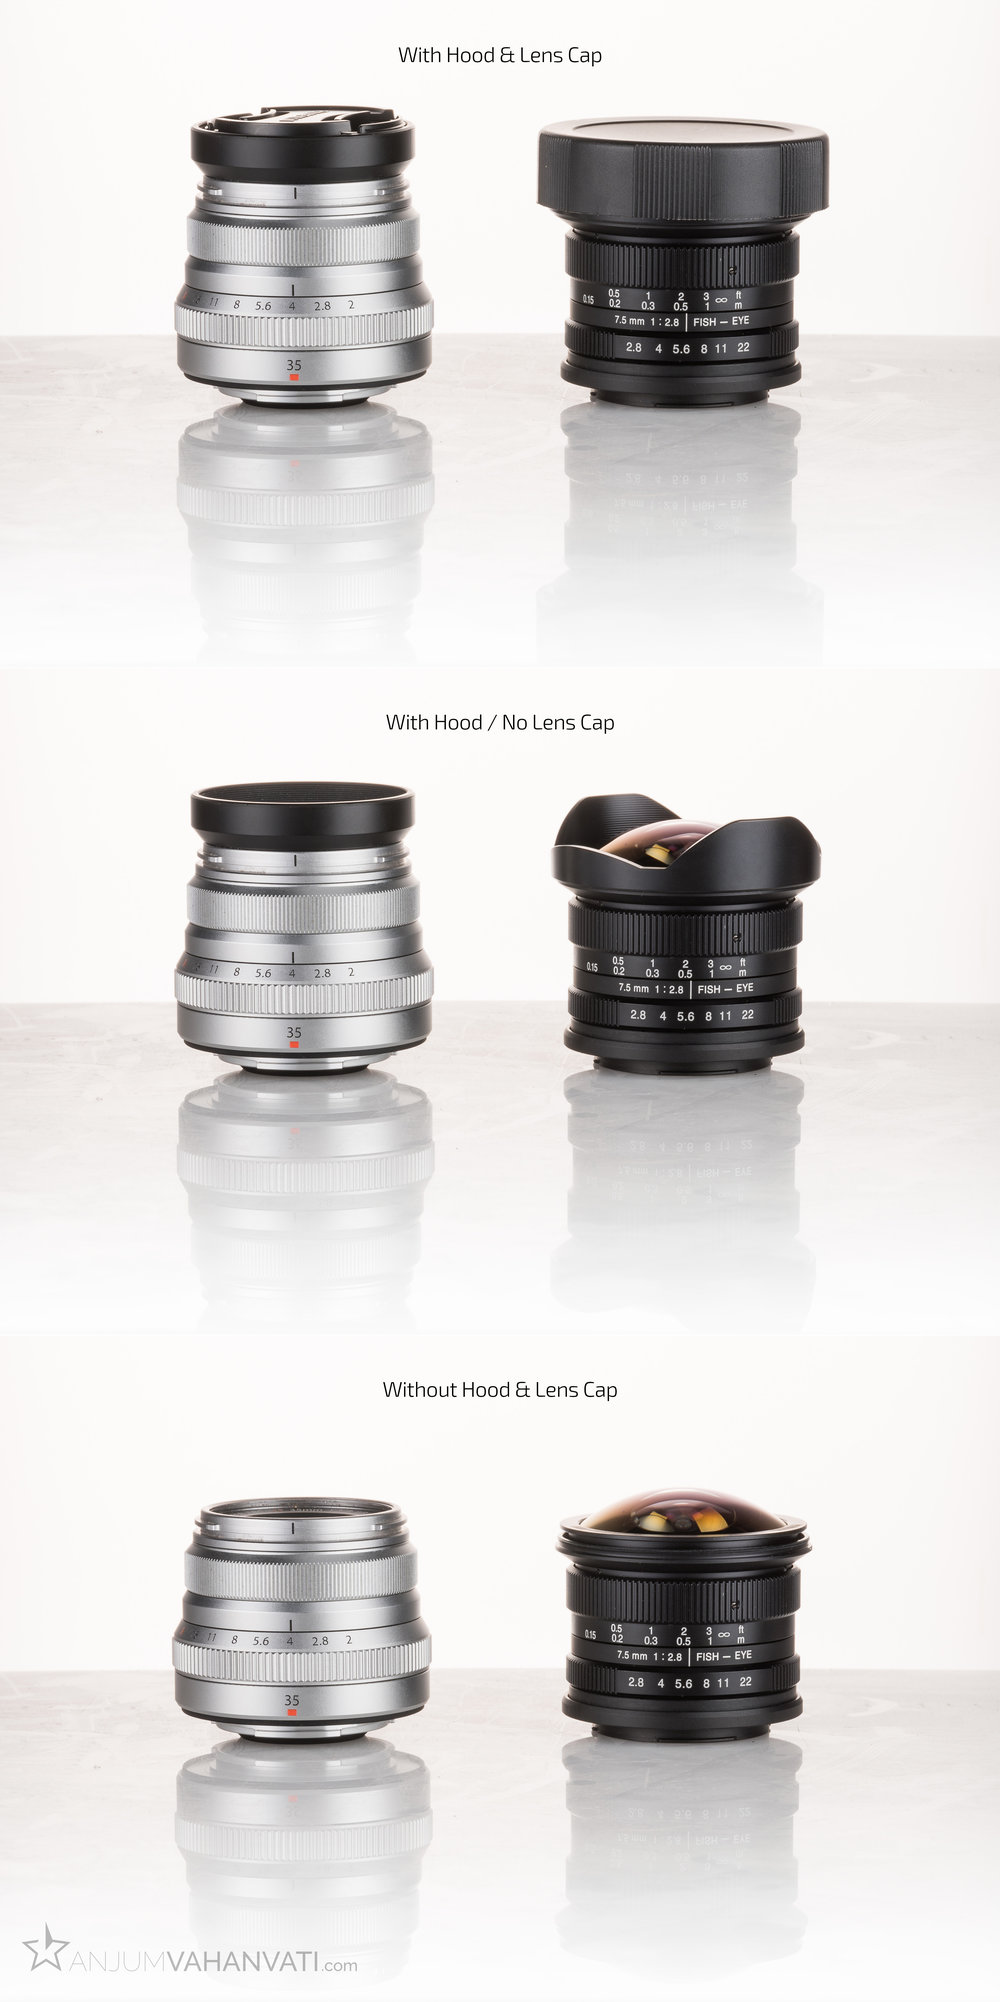 Size comparison with the only other lens I have, Fujinon 35mm f2 WR